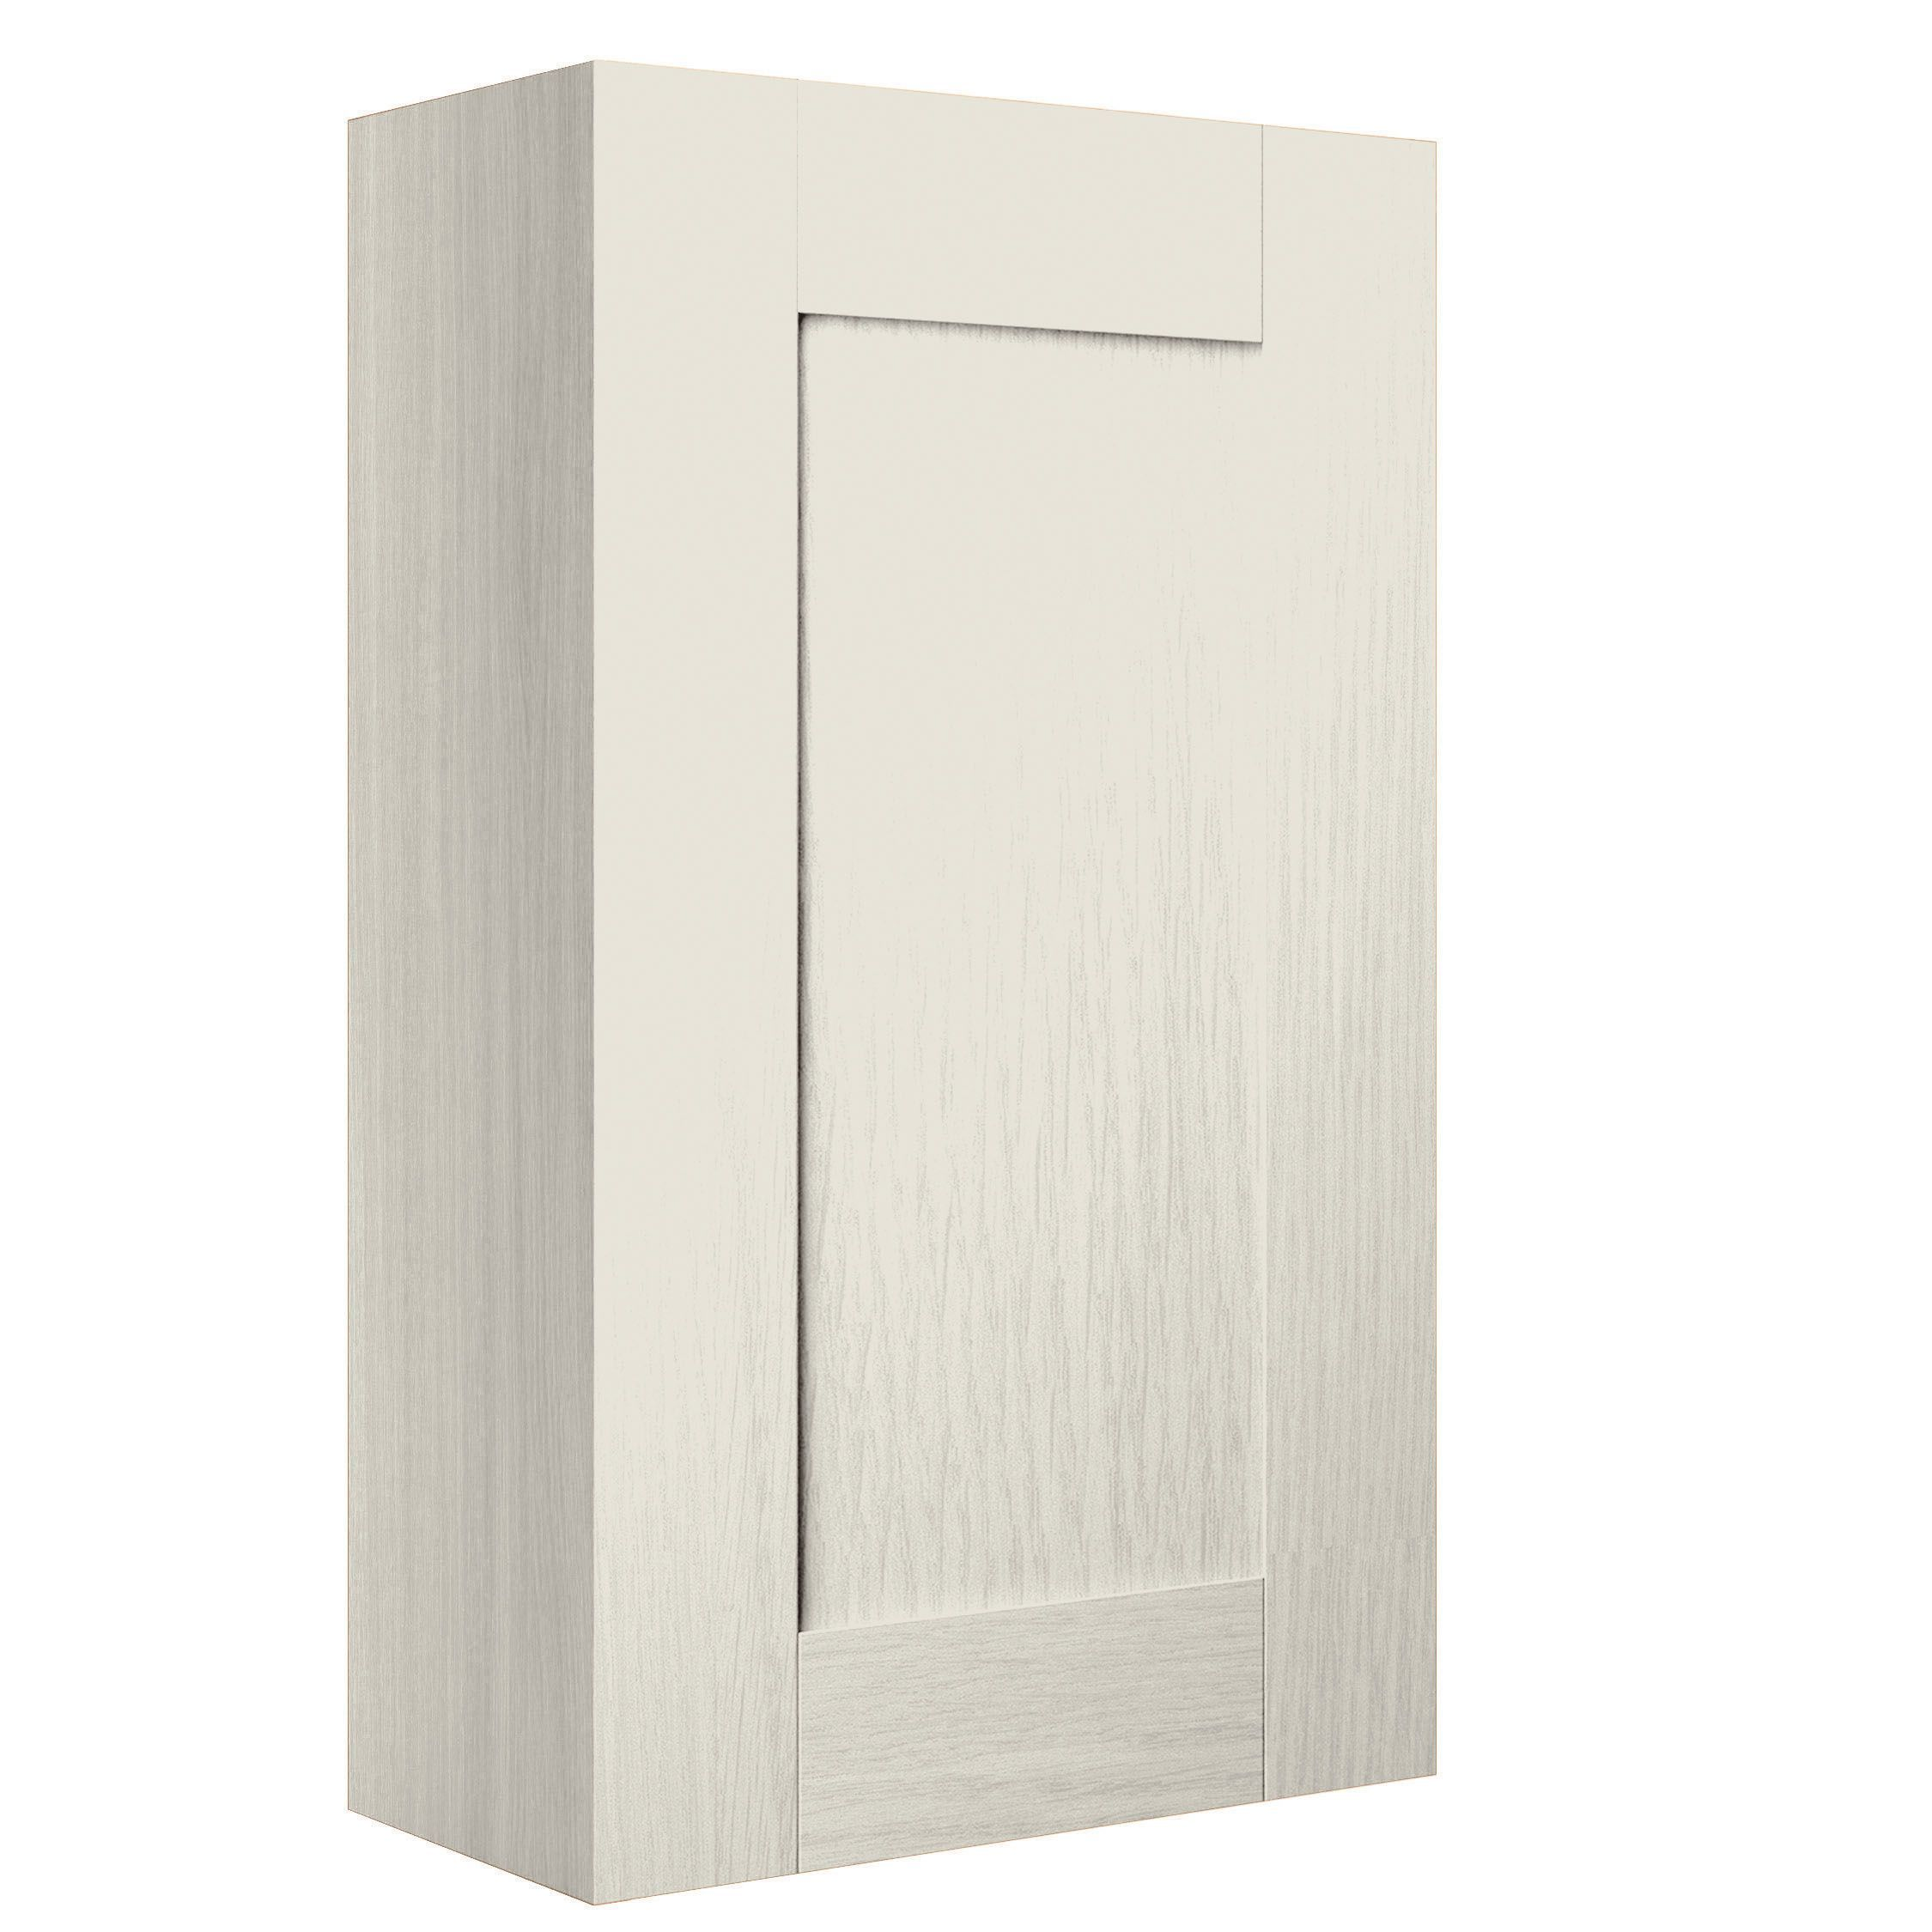 Cooke Lewis Santini Gloss White Wall Cabinet Departments DIY At